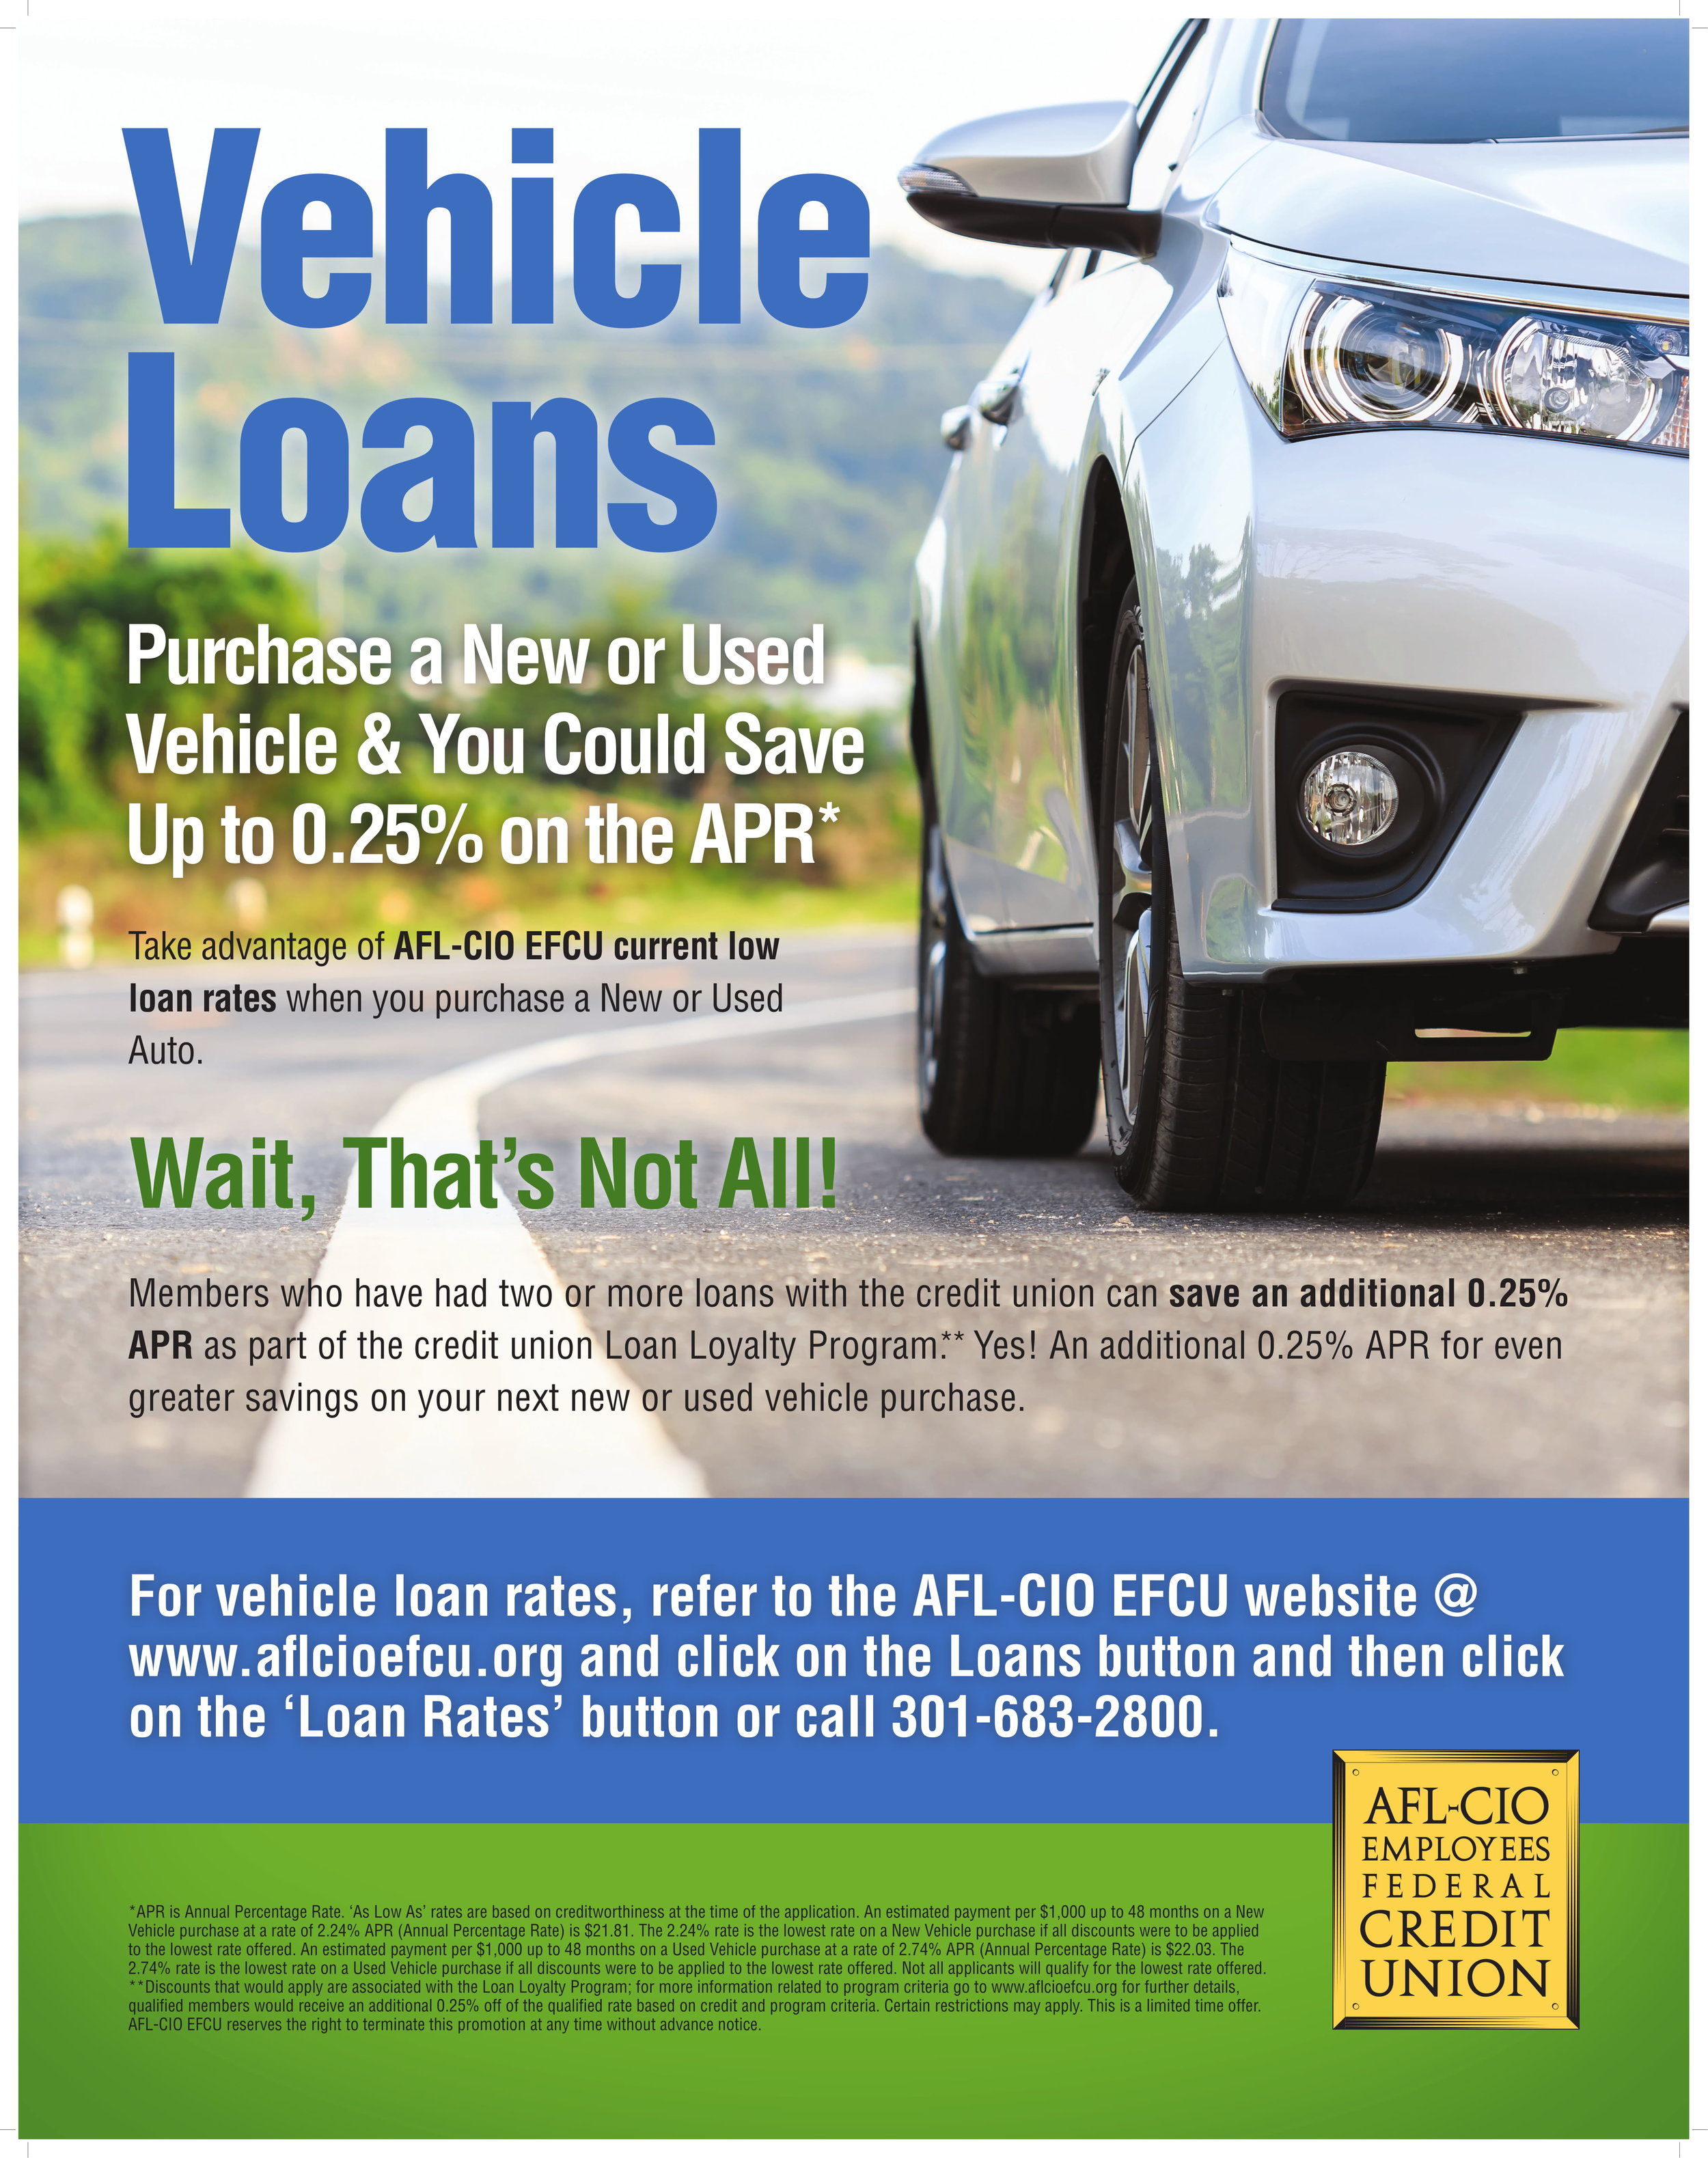 VehicleLoan-Poster-1.jpg